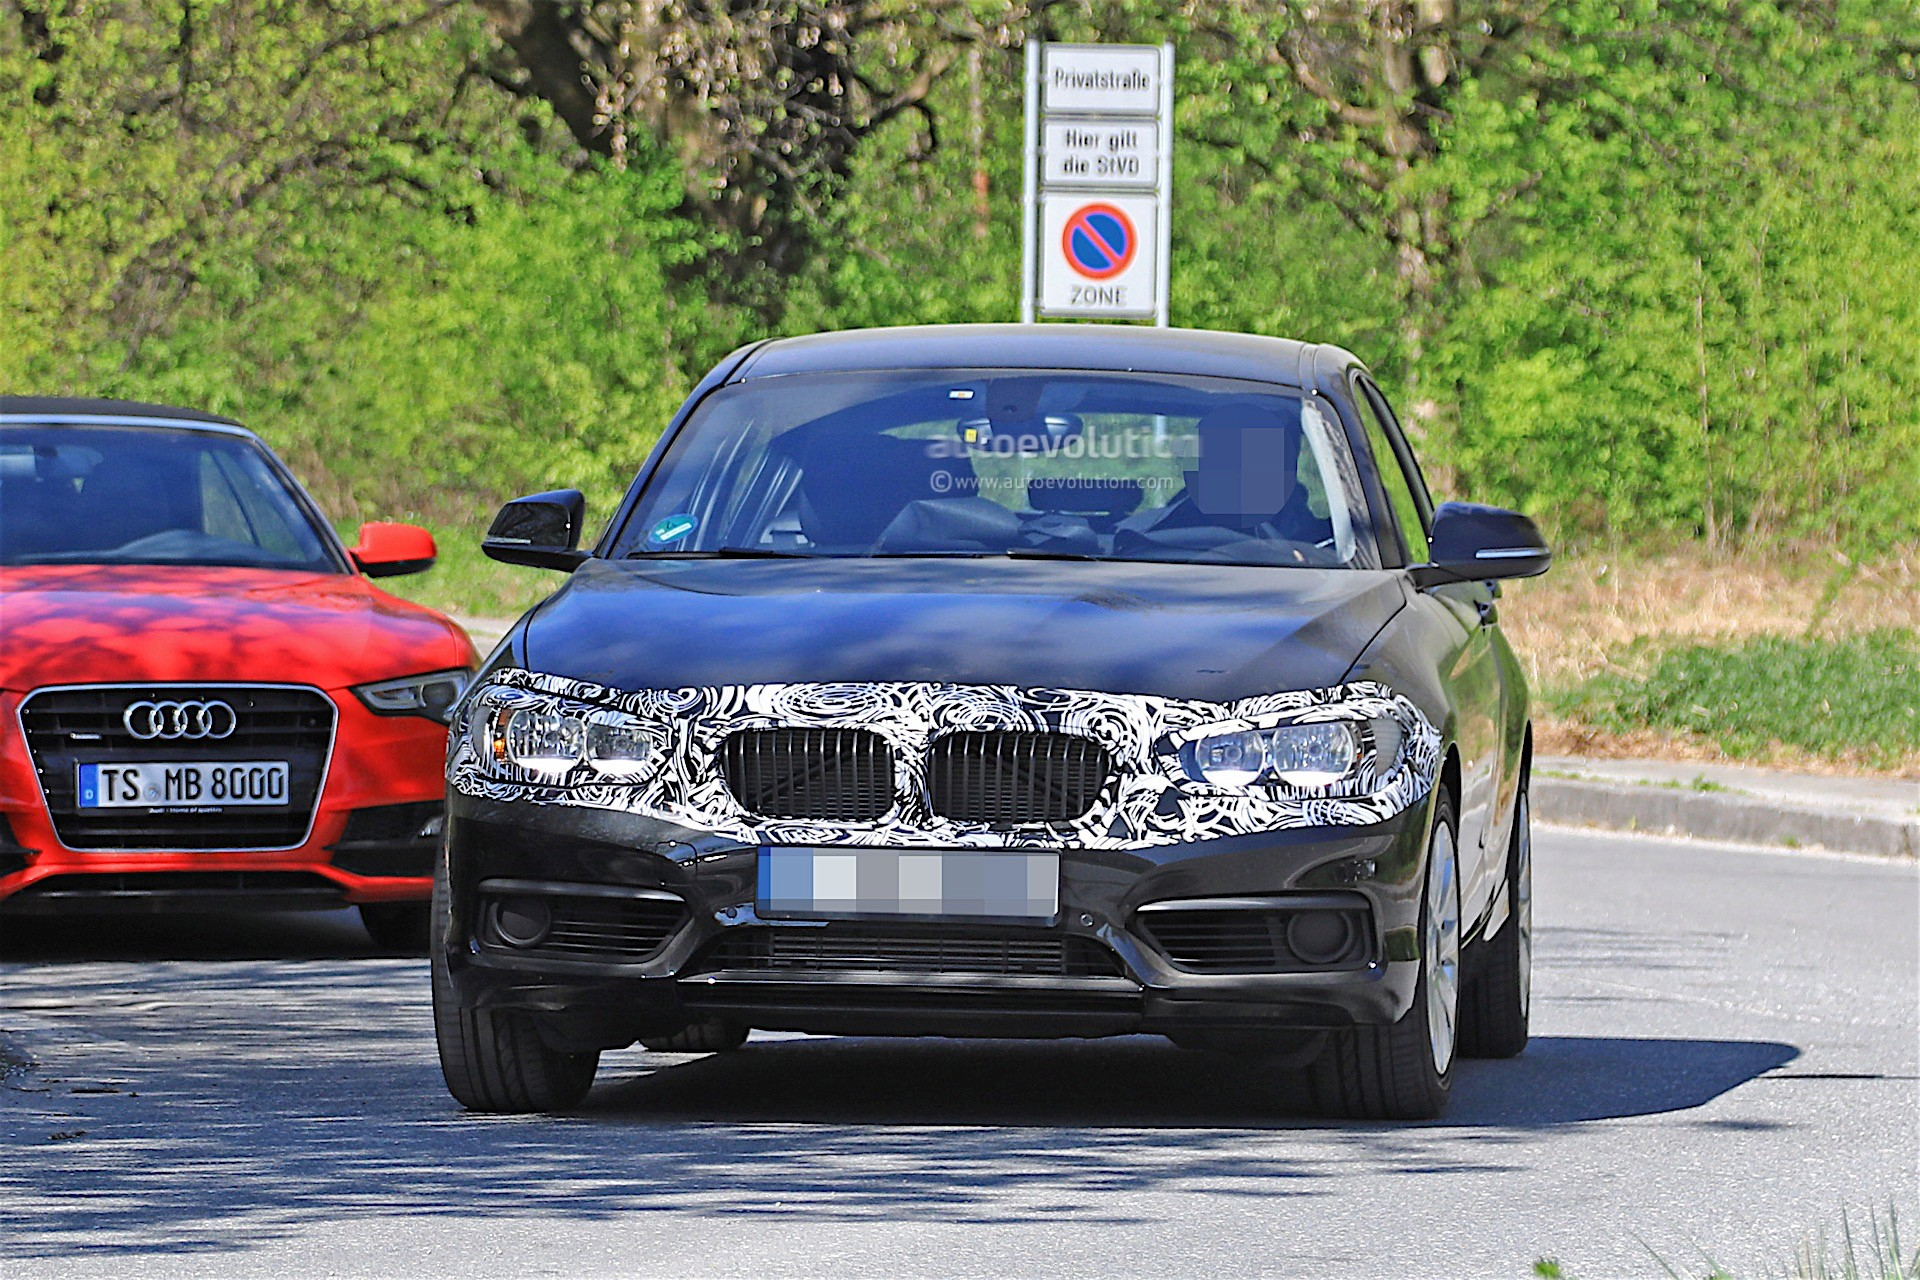 2018 Bmw 1 Series Facelift Spied With Less Camouflage In Germany Autoevolution